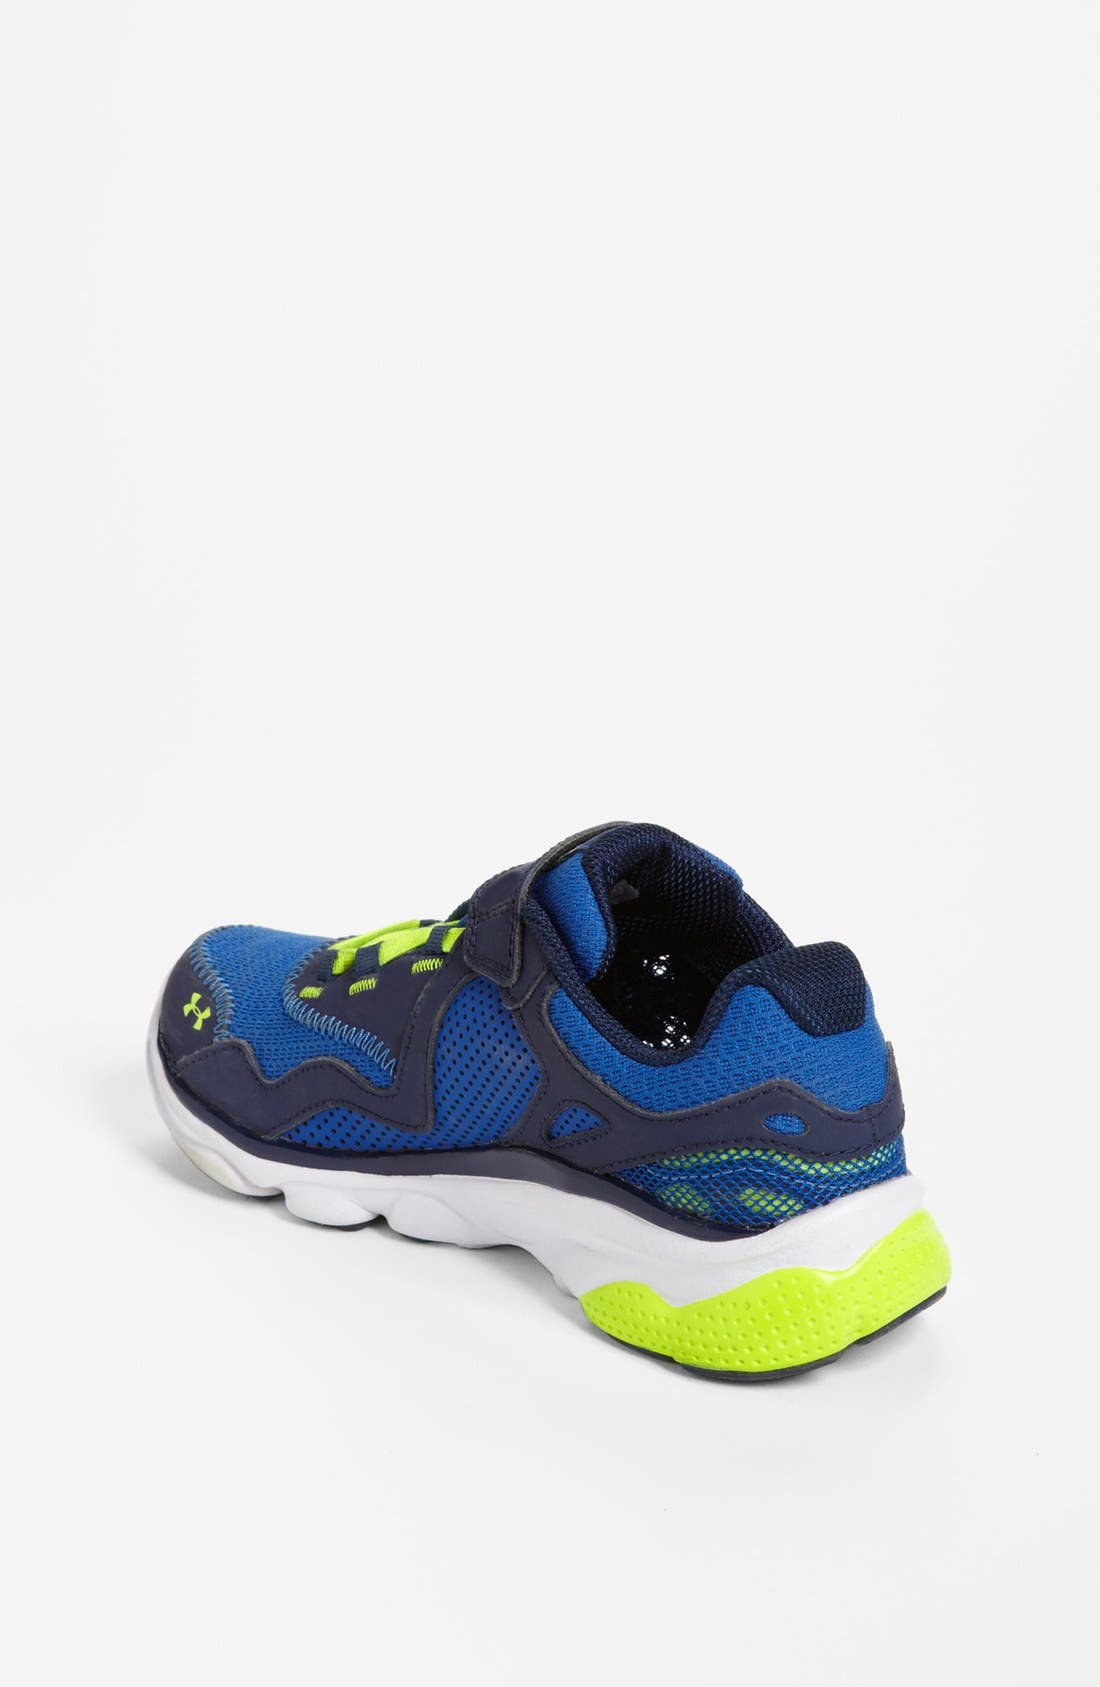 Alternate Image 2  - Under Armour 'Assert III' Athletic Shoe (Baby, Walker, Toddler & Little Kid)